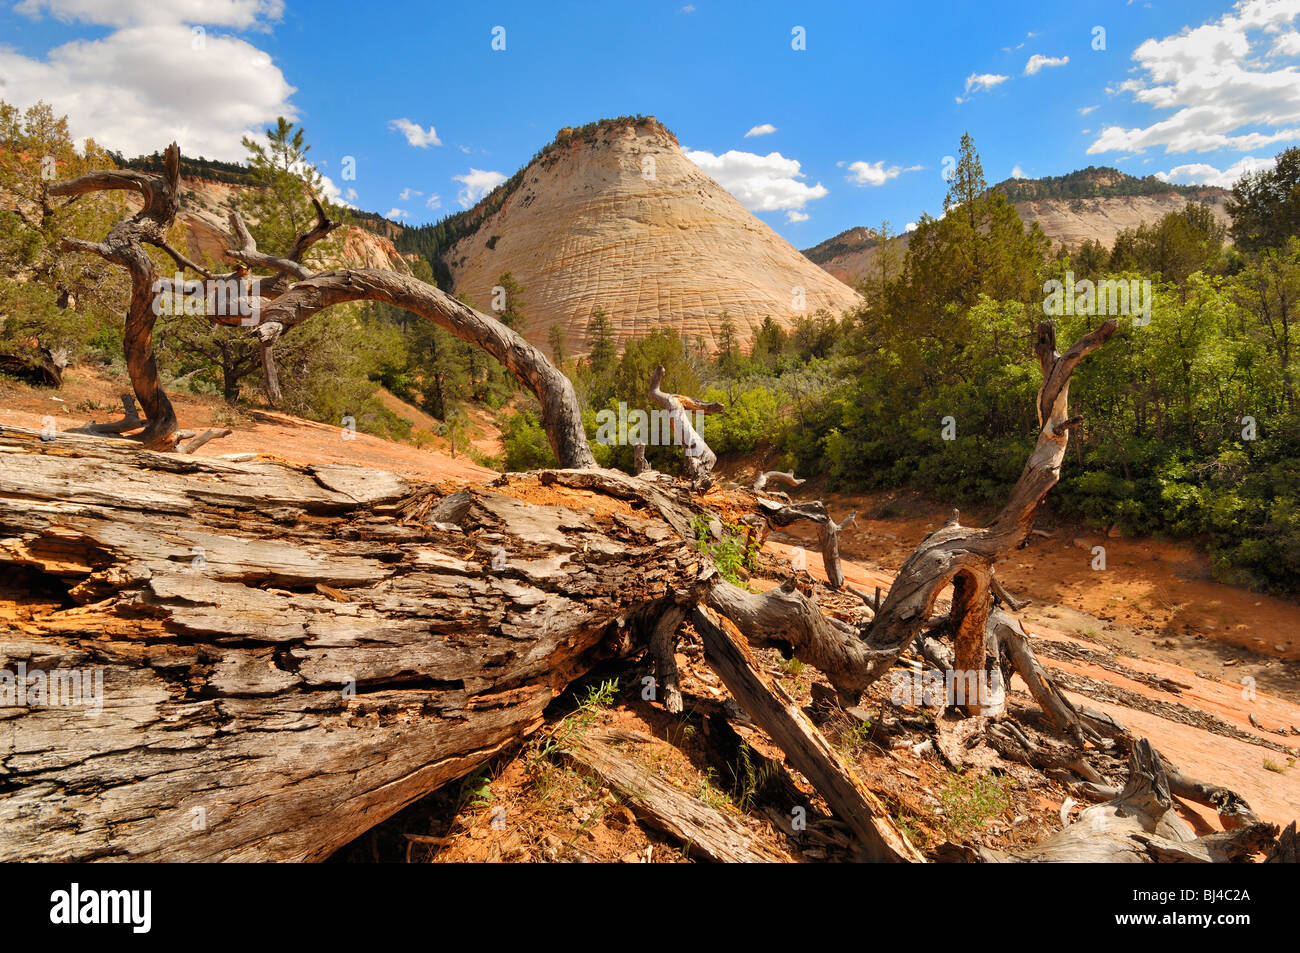 Checkerboard Mesa seen from the viewpoint at Zion National Park, Utah, United States of America - Stock Image